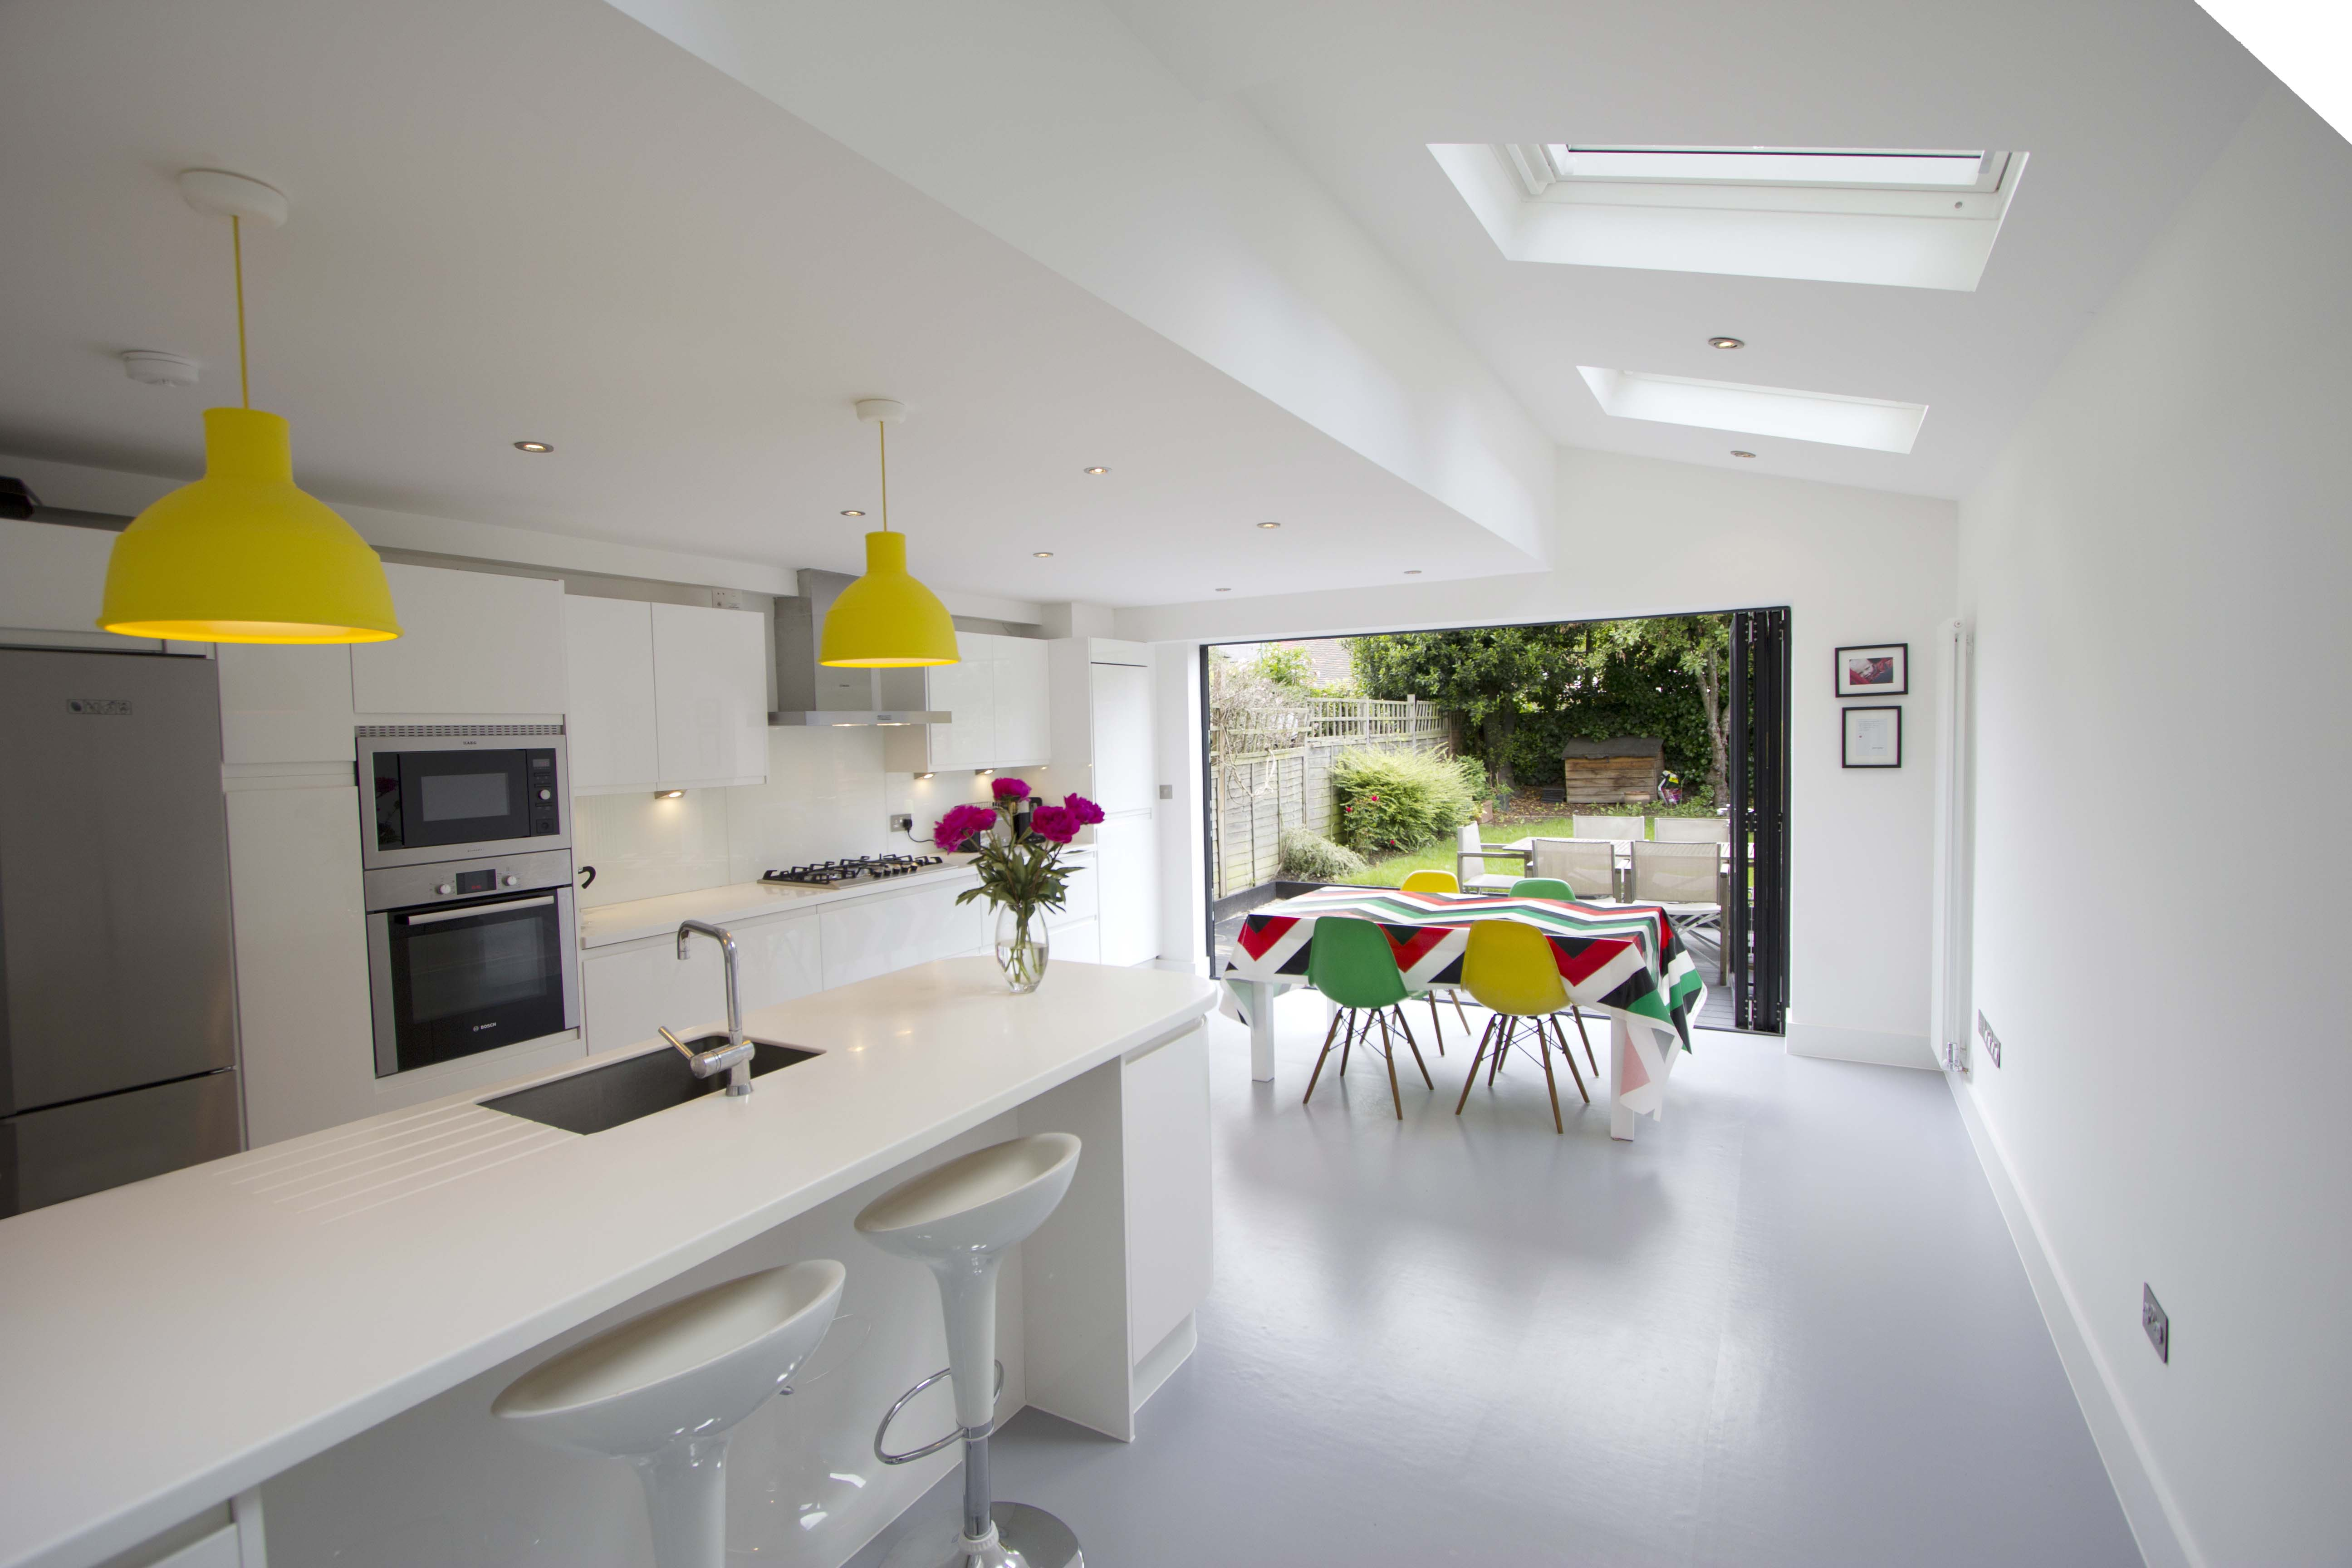 Wyleu street for Kitchens with dining areas designs